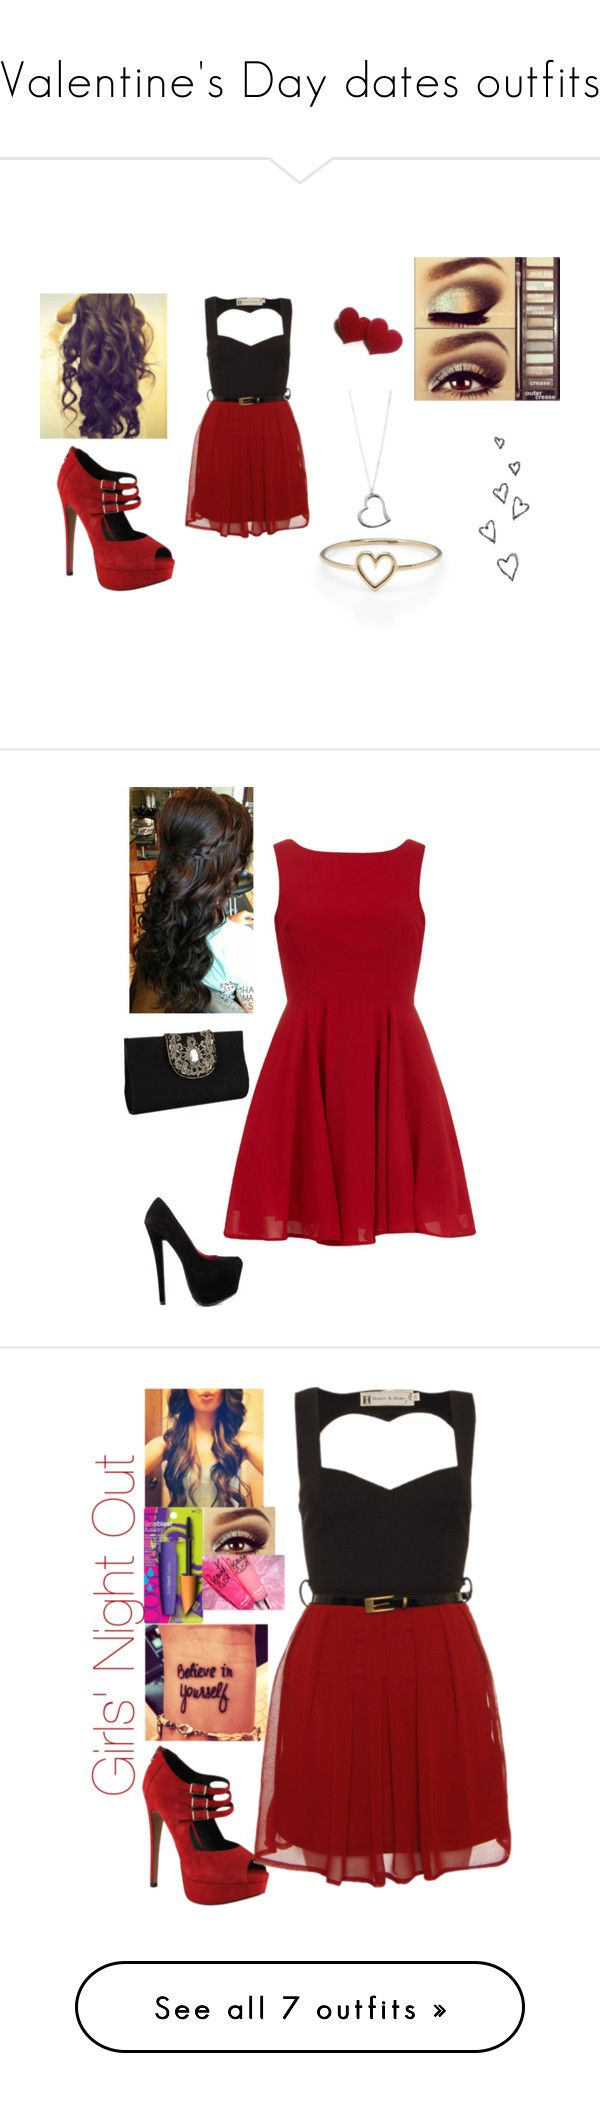 """""""Valentine's Day dates outfits"""" by mathgeek16 ❤ liked on Polyvore featuring ALDO, Aéropostale, Aurélie Bidermann, women's clothing, women, female, woman, misses, juniors and Alice & You"""